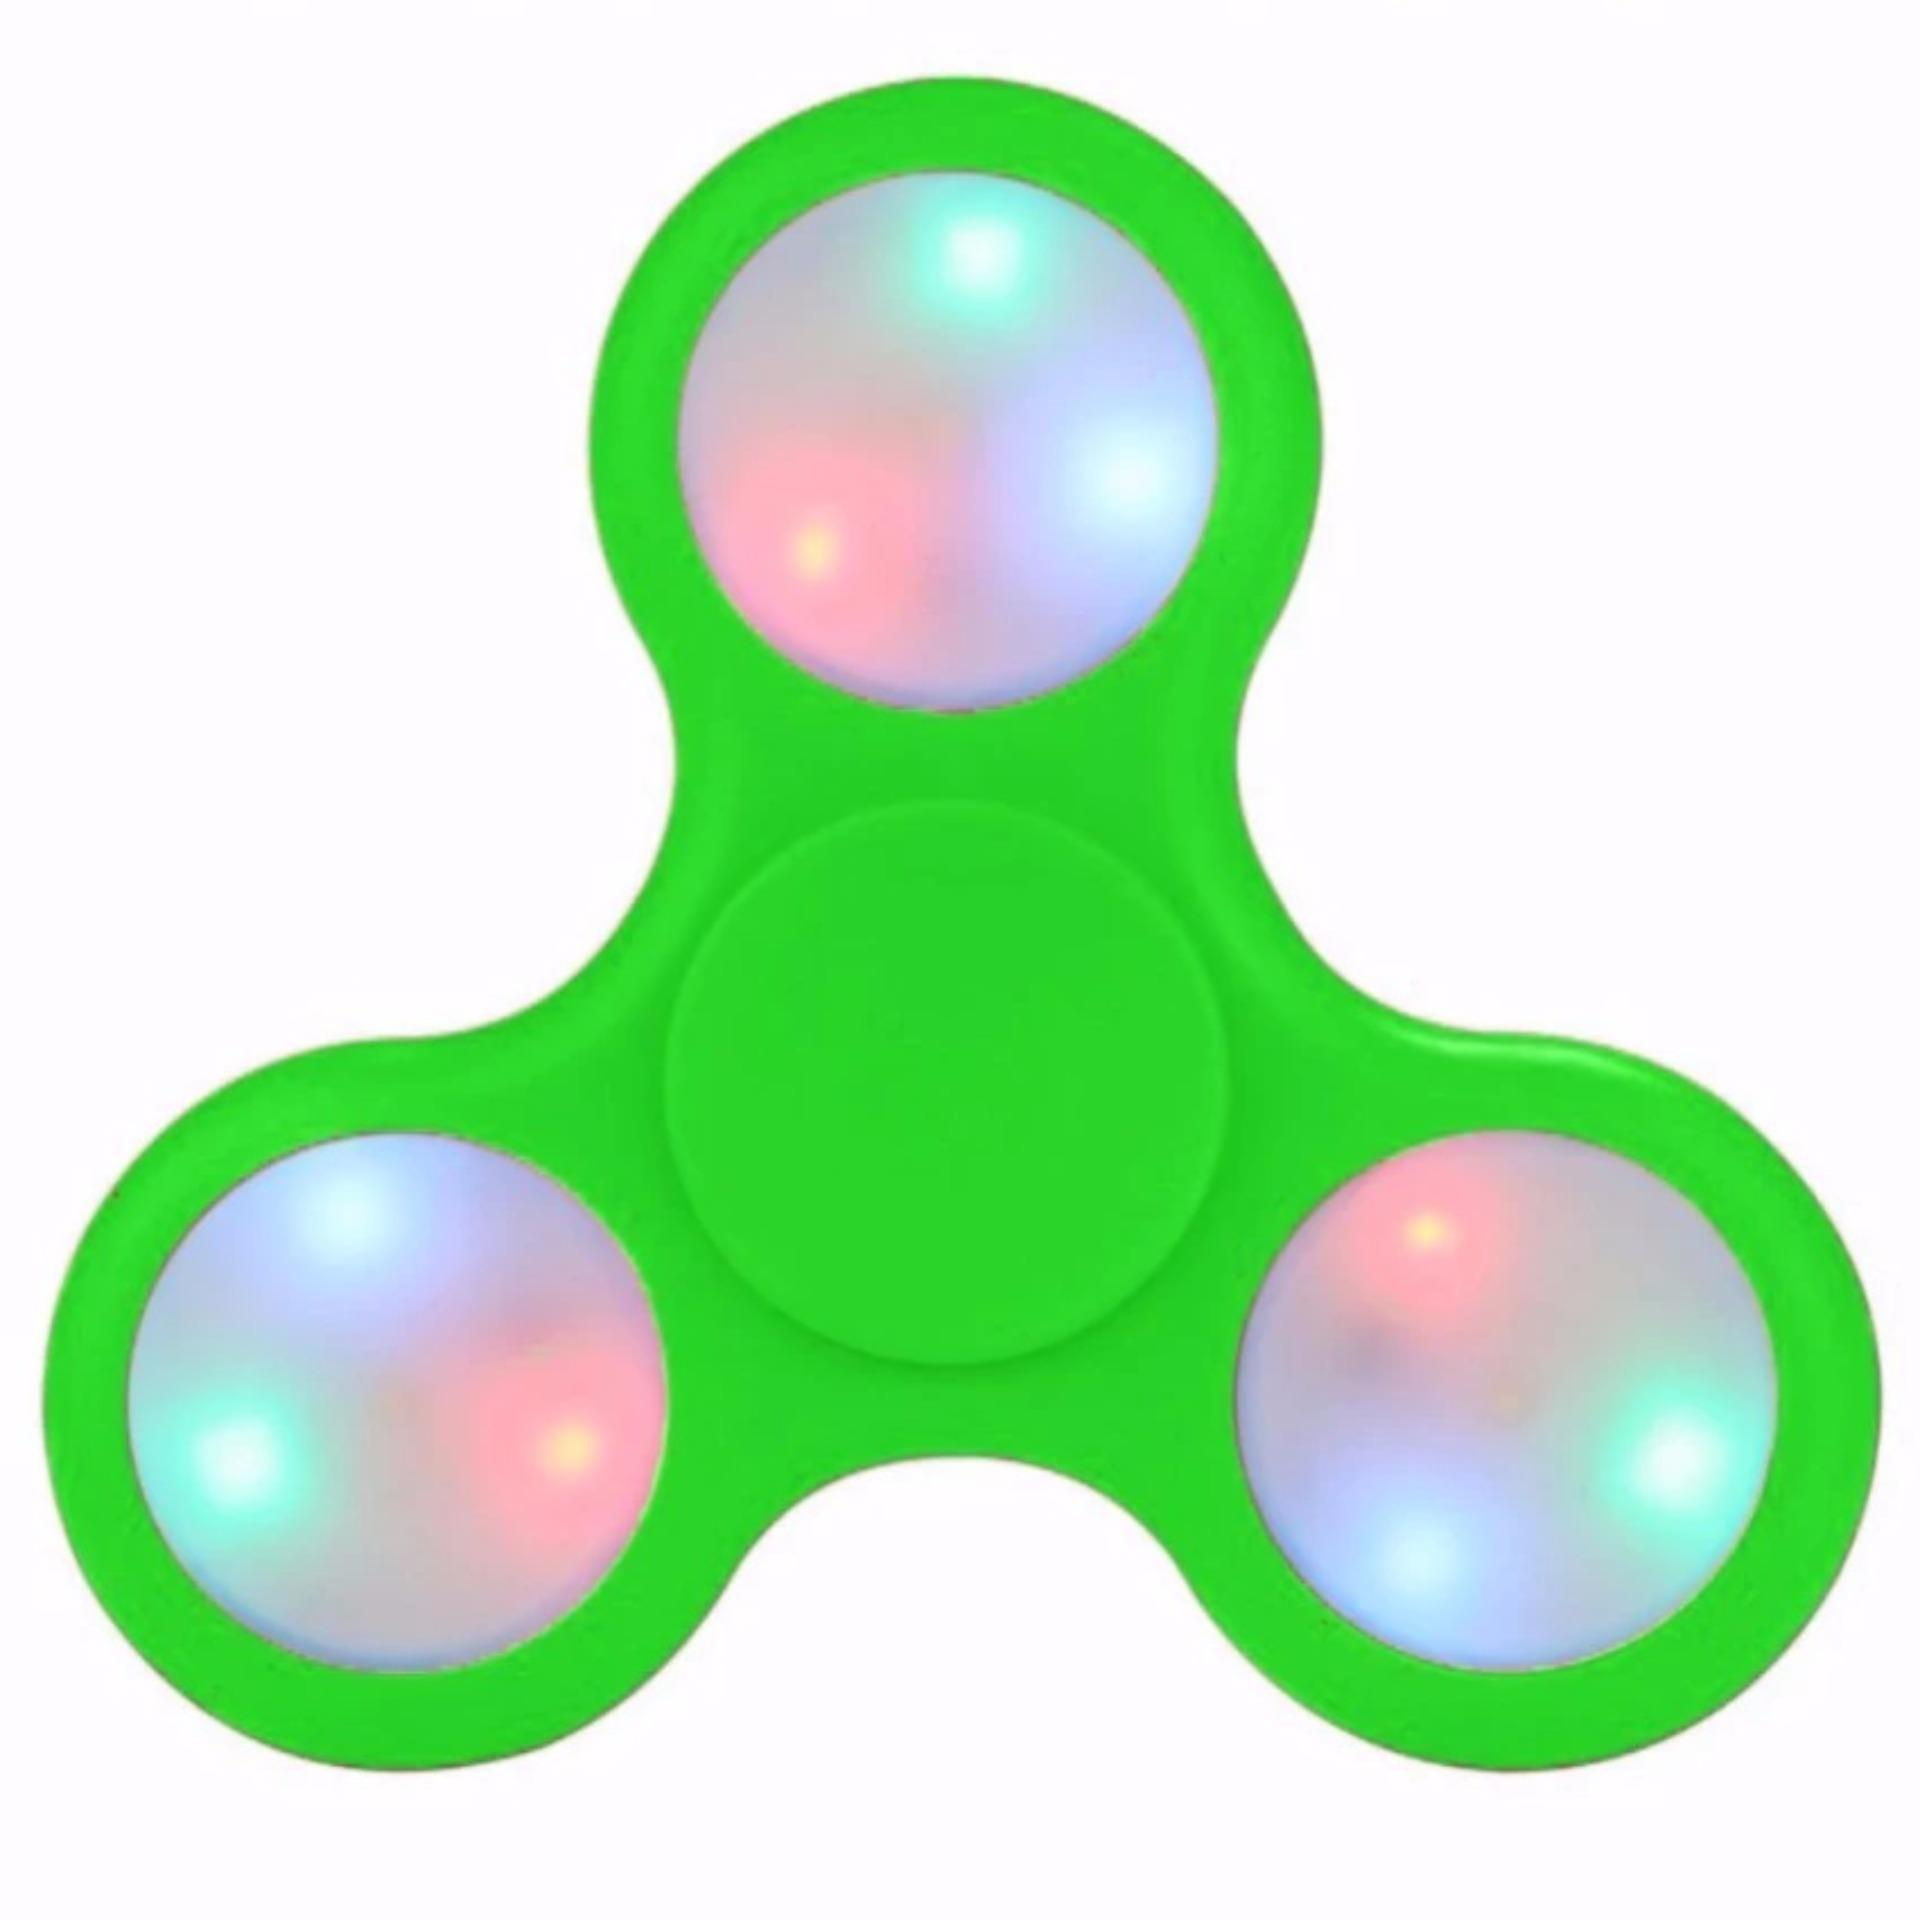 Fidget Spinner LED Light Colours Disco ON OFF Hand Finger Toys for Focus Anxiety & Stress Relief EDC Tri-Spinner - Mainan Jari Tangan Putar Lampu LED Disko ...